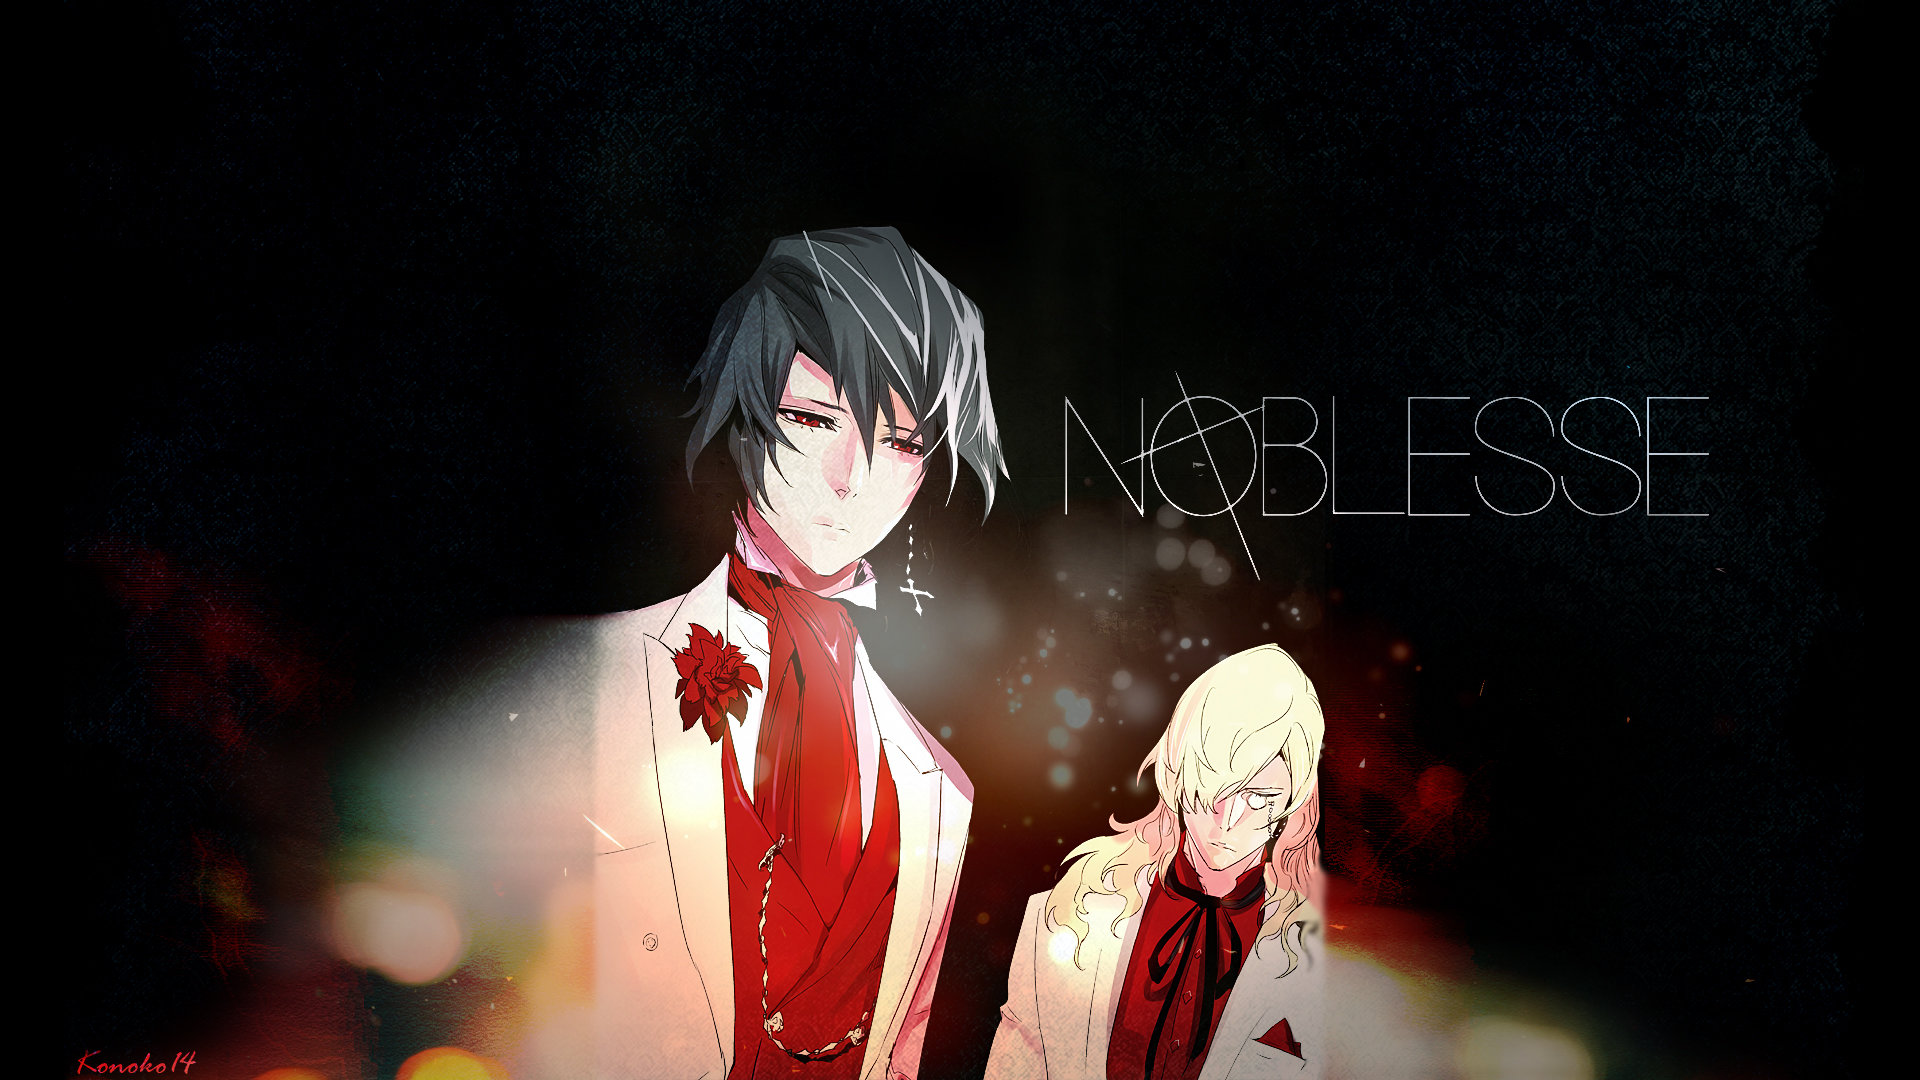 High resolution Noblesse full hd 1920x1080 background ID:105619 for desktop